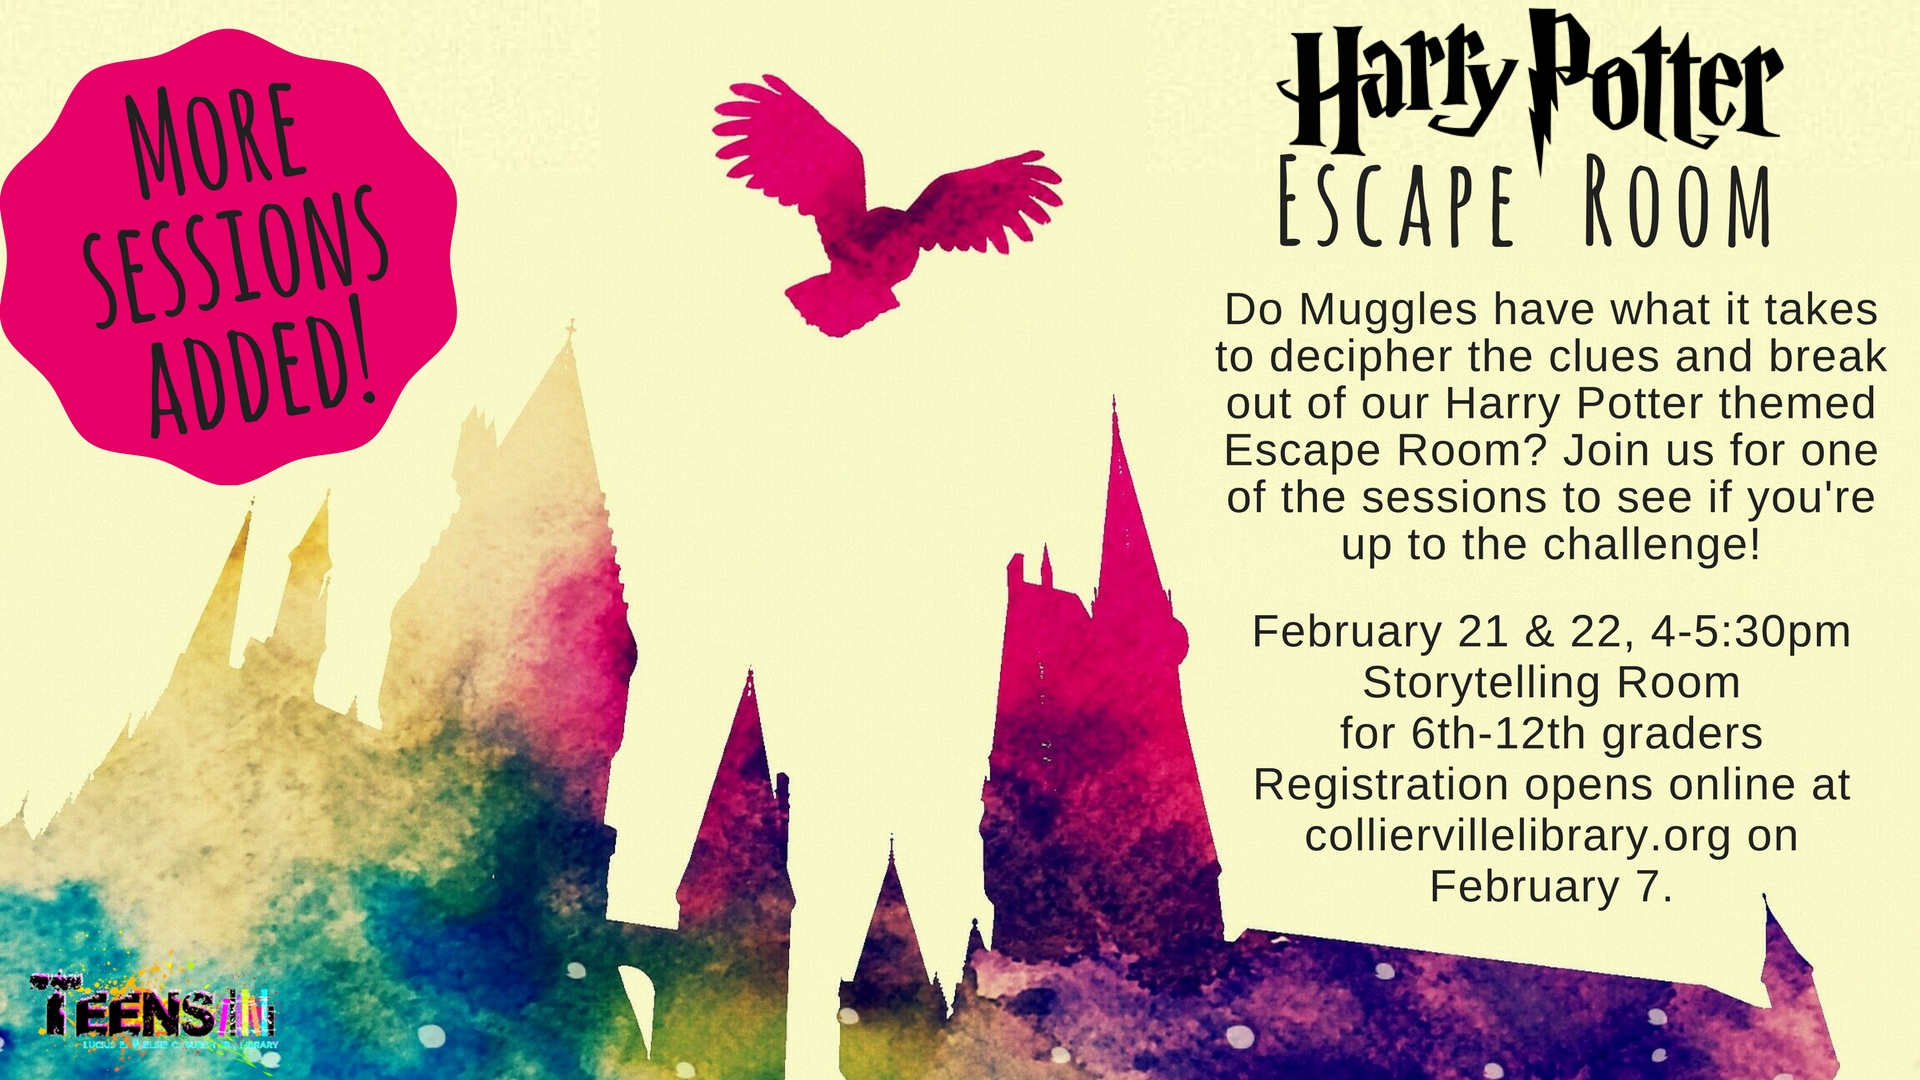 Harry Potter Escape Room